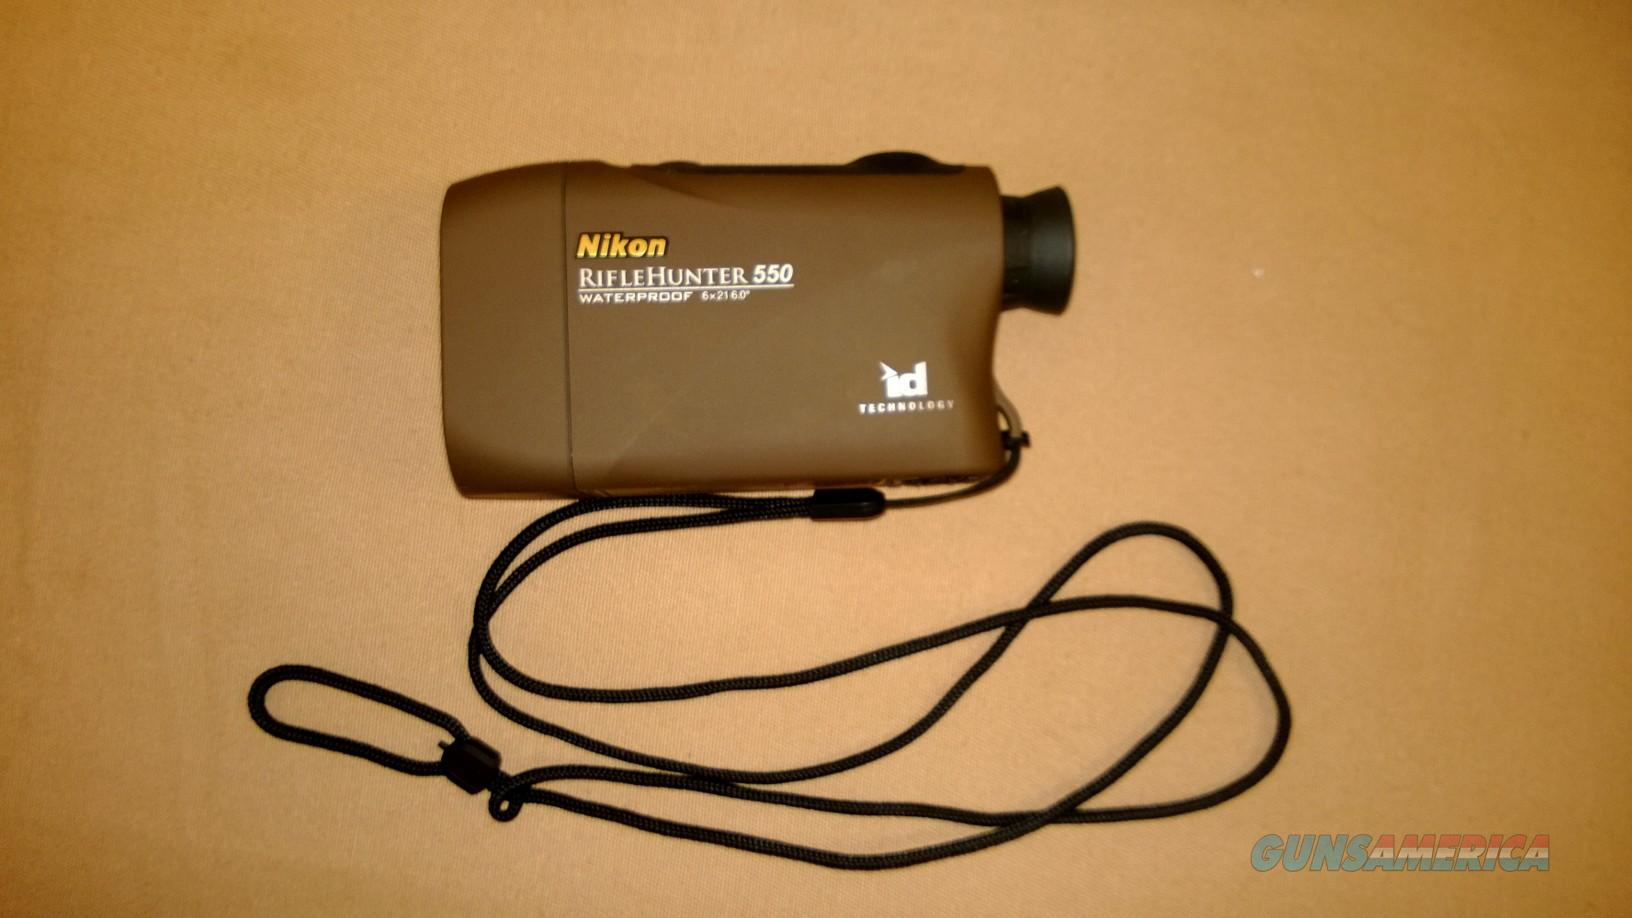 RANGE FINDER: NIKON RIFLE HUNTER 550  Non-Guns > Scopes/Mounts/Rings & Optics > Non-Scope Optics > Rangefinders